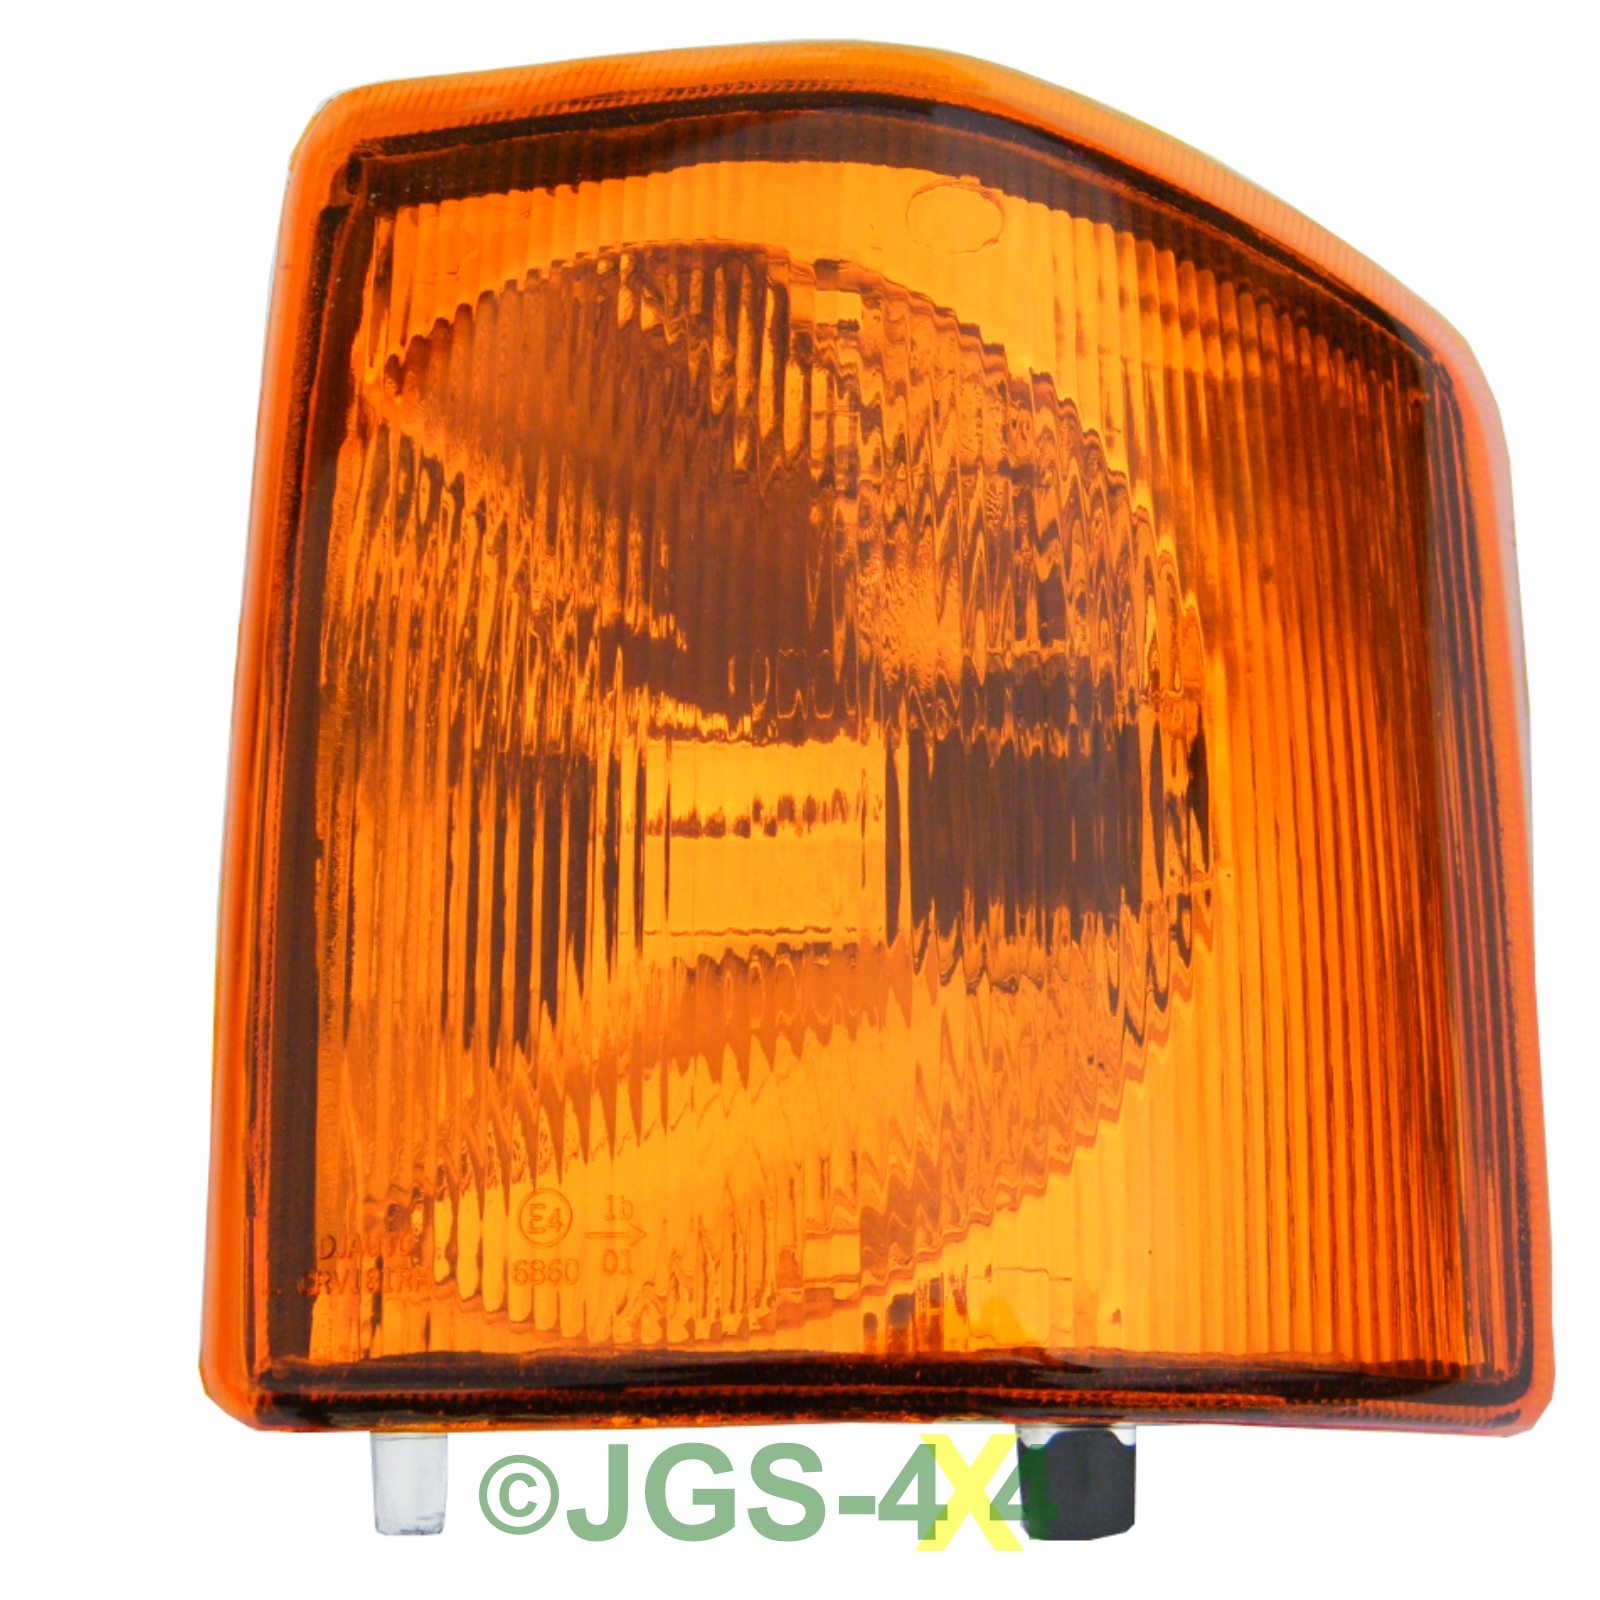 Pair Of Clear Front Indicator Lights For Land Rover: Land Rover Discovery 1 Front Indicator Lamps Lights